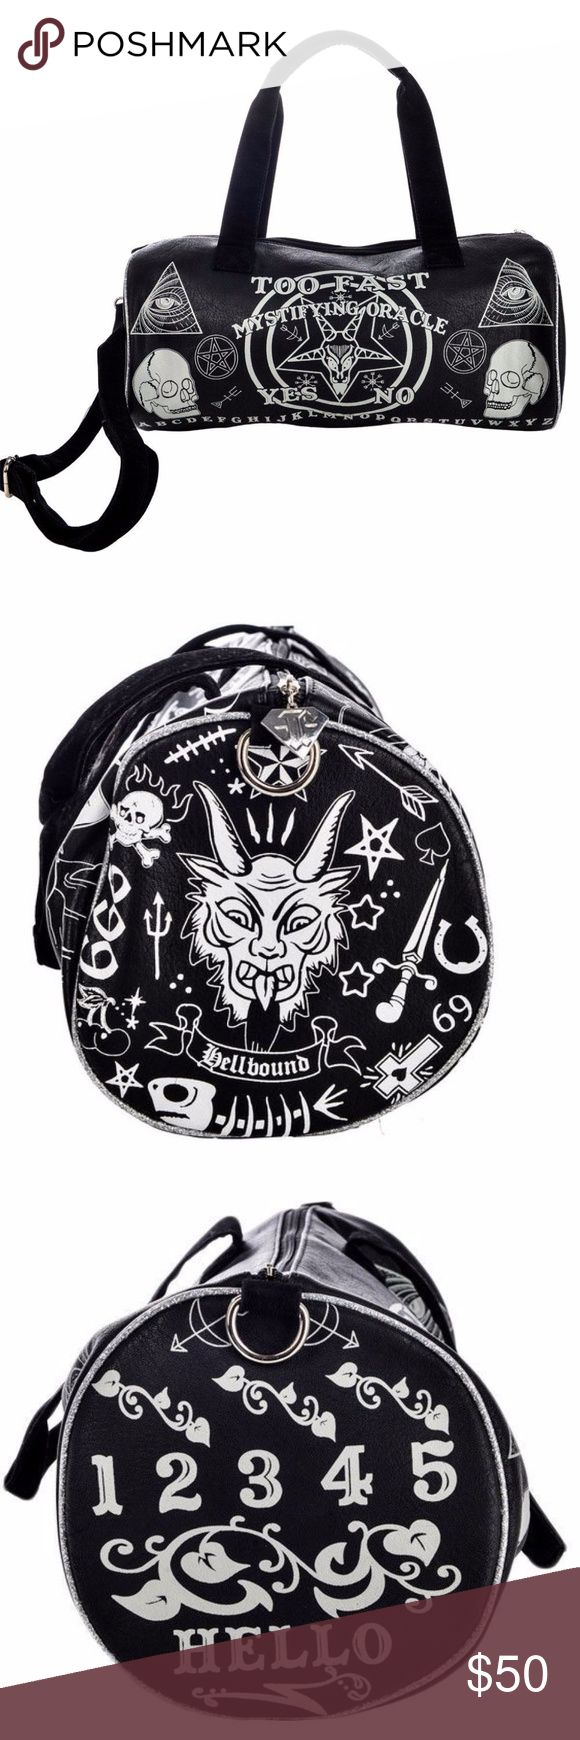 """Too Fast Ouija Large Duffel Bag Spirit Board Devil OUIJA: Description:  If y'all wanna put severed heads in these duffle bags, we're not gonna stop you - it's your right.  We simply ask you perform a sacrifice to the sun god in our honor first please. Overview:  Matte faux leather duffle bag with suede straps and piping Ouija art on front and back. Aprox. 17"""" Long   10"""" Tall   7 1/2"""" Wide Shipping weight 2lbs Content & Care:  Man-made materials. Wipe clean with damp cloth. Artist:  Clare…"""